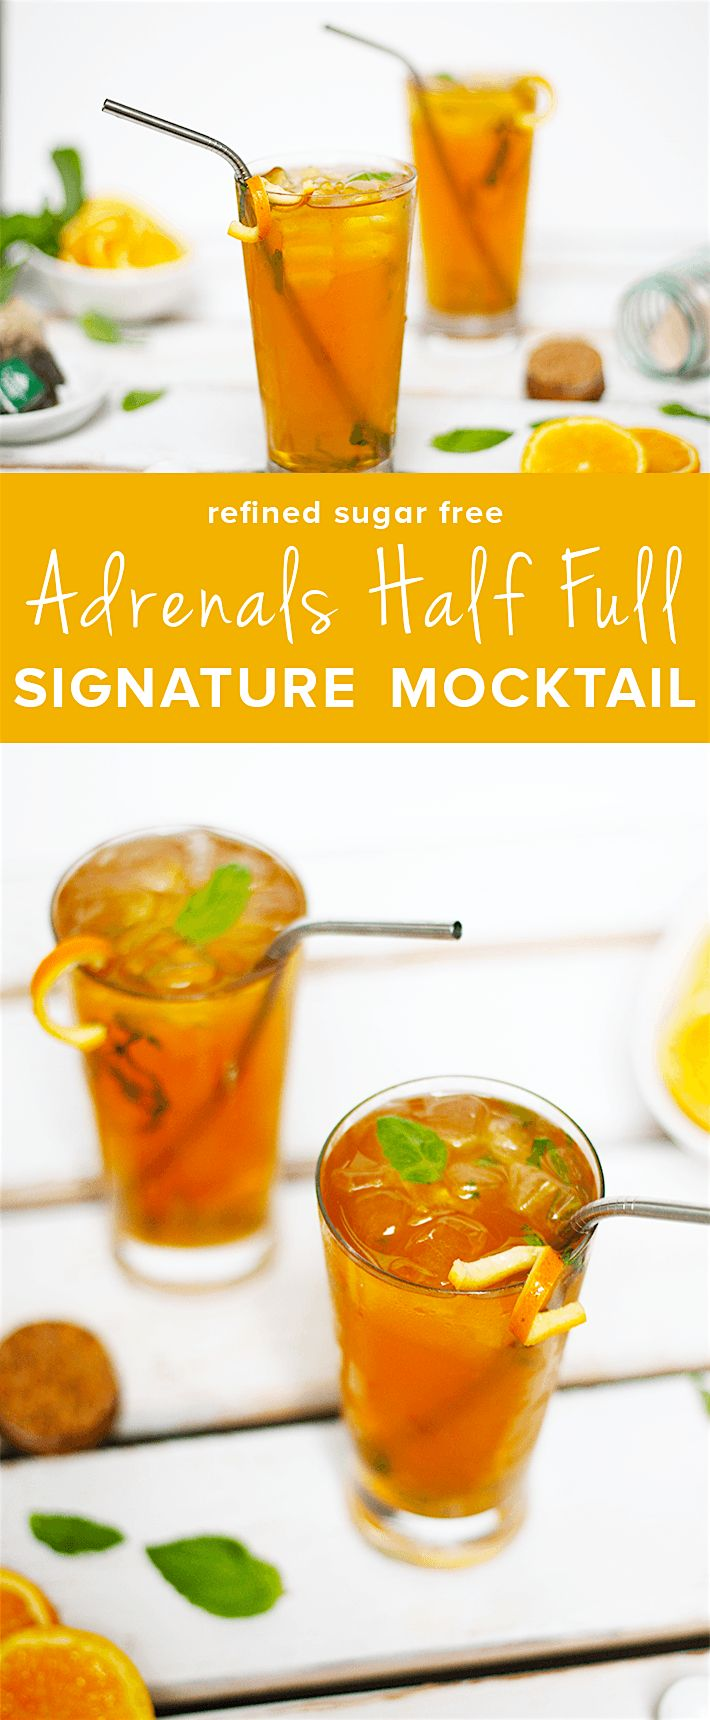 Adrenals Half Full Signature Mocktail is the perfect drink to add to your daily routine as a way to support your adrenal glands.